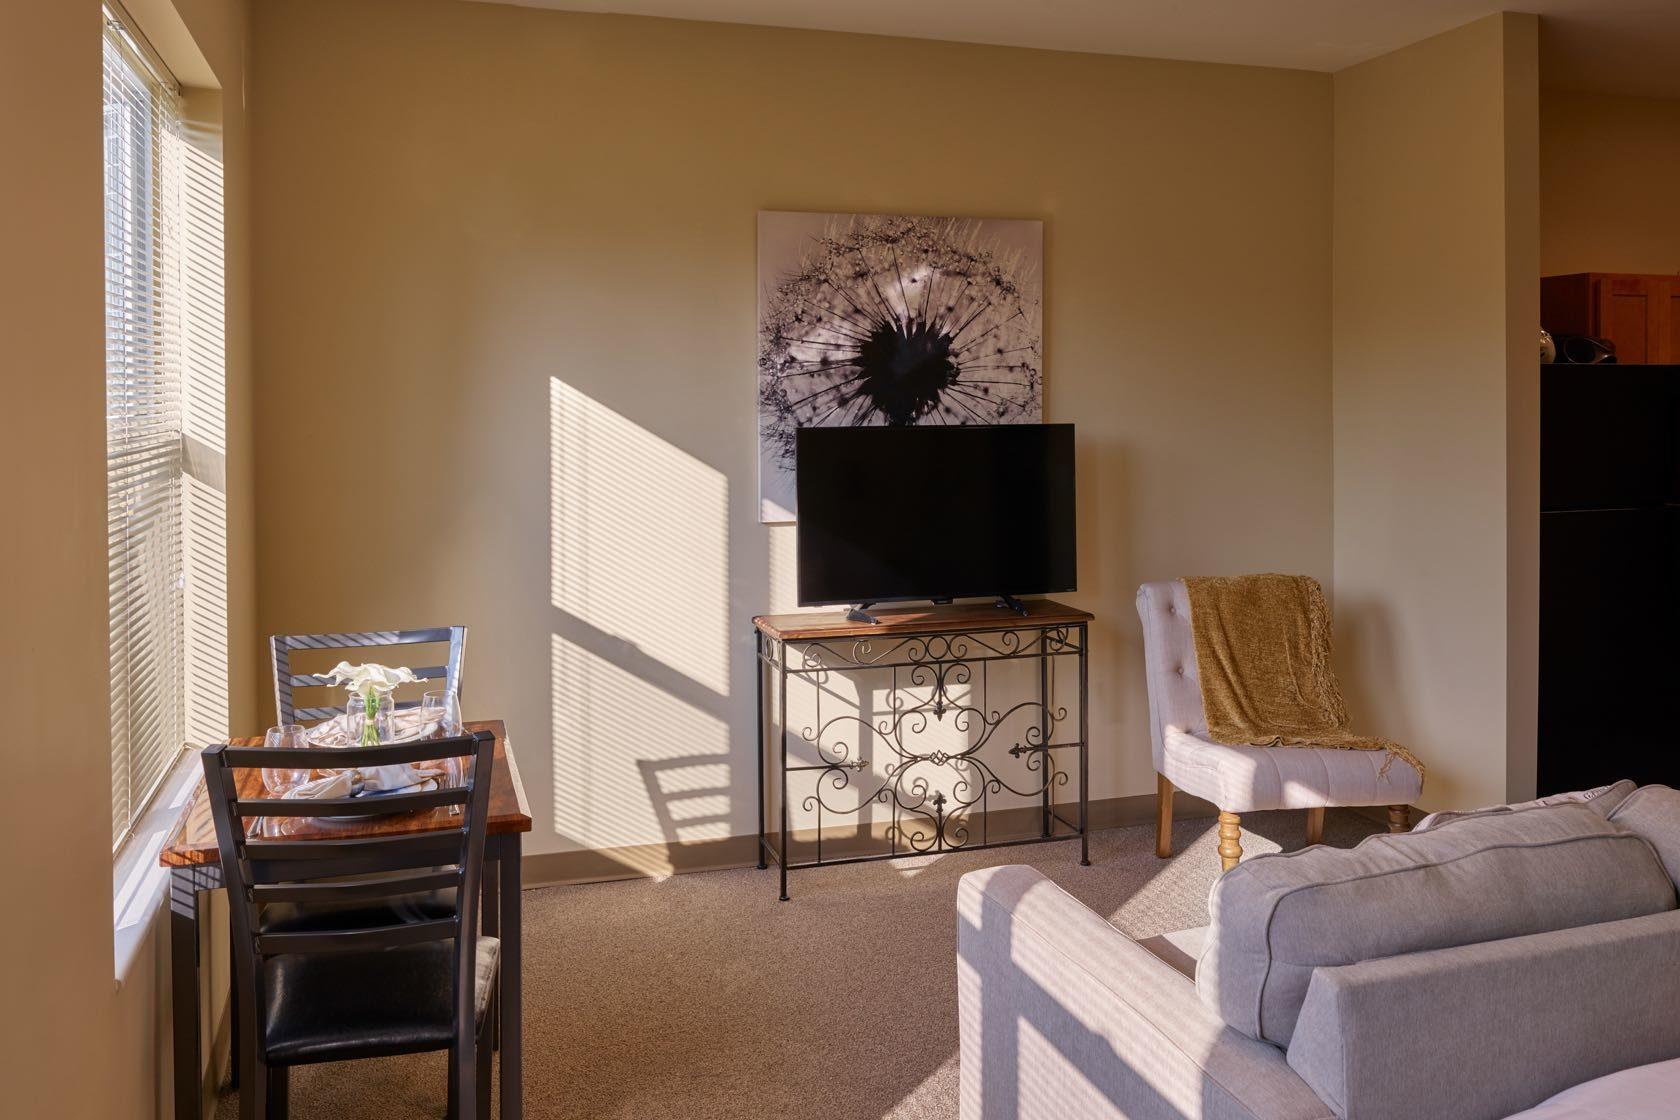 Studio Apartment in Terre Haute IN at Silver Birch Senior Living Community